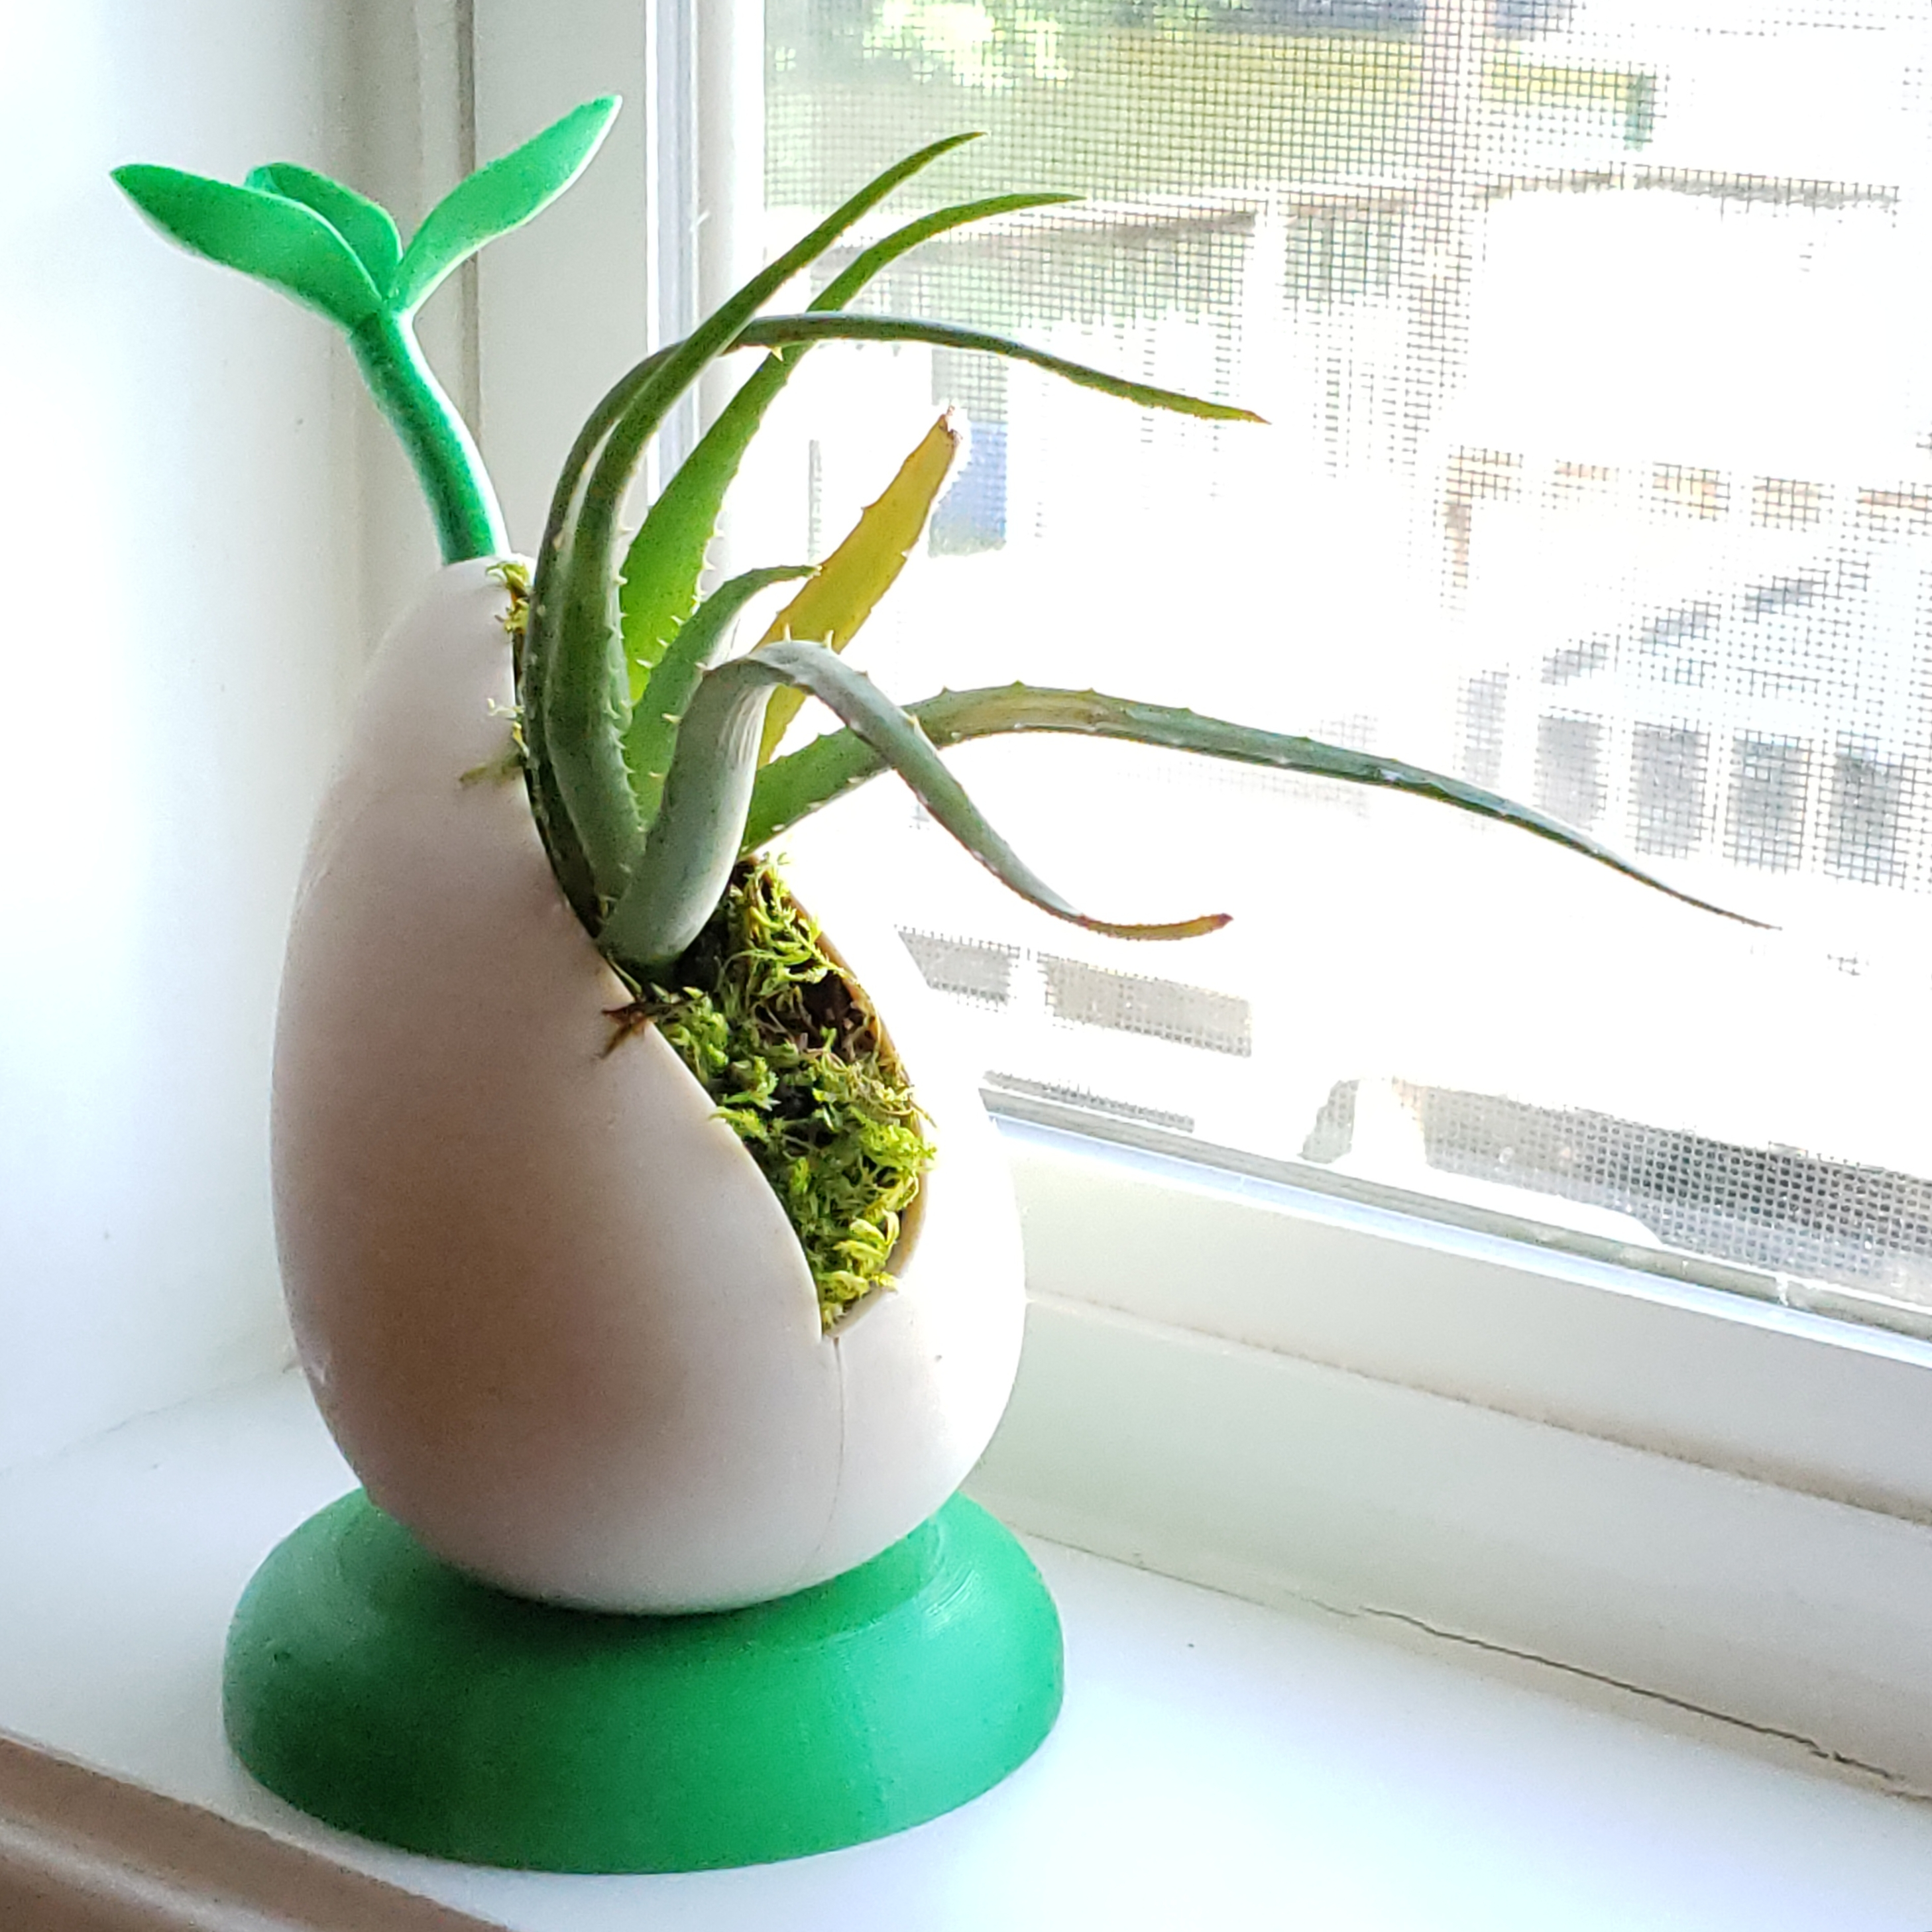 1.jpg Download free STL file Sprout - Self-Watering Desktop Planter for small plants and succulents • 3D print model, ThatJoshGuy